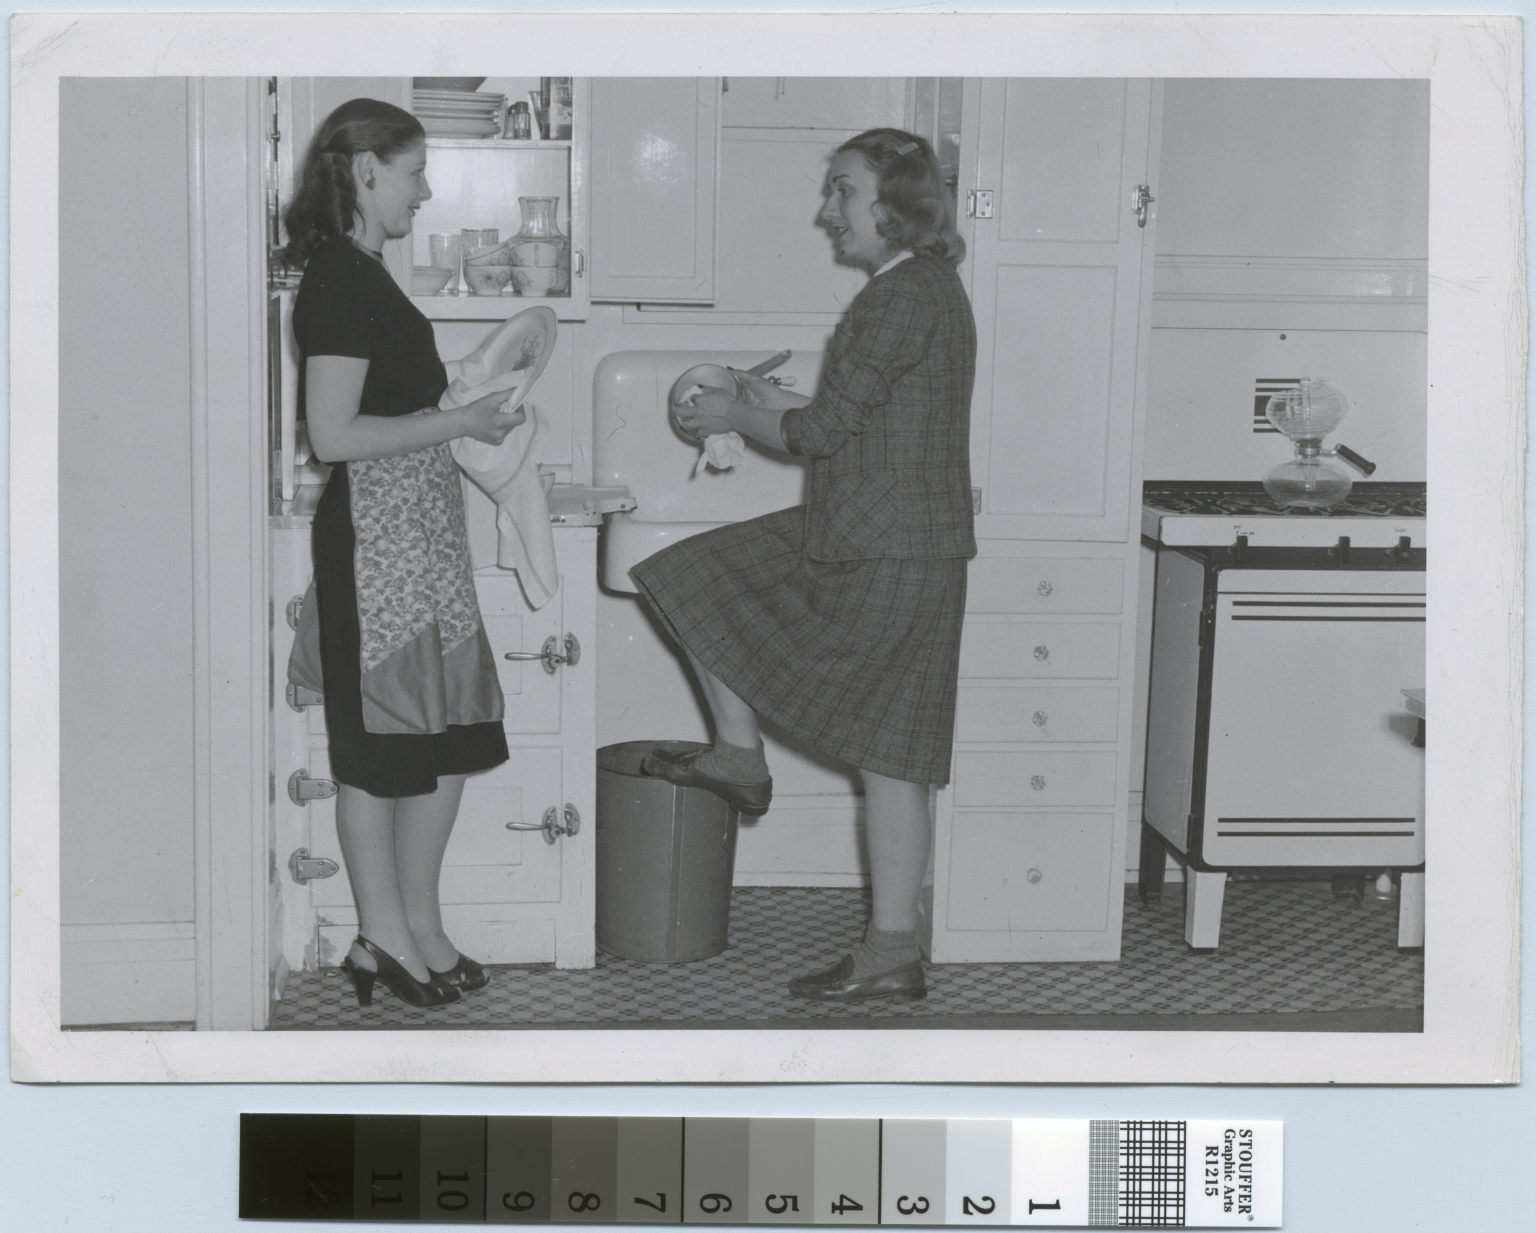 Students washing dishes, Kate Gleason Hall, Rochester Institute of Technology